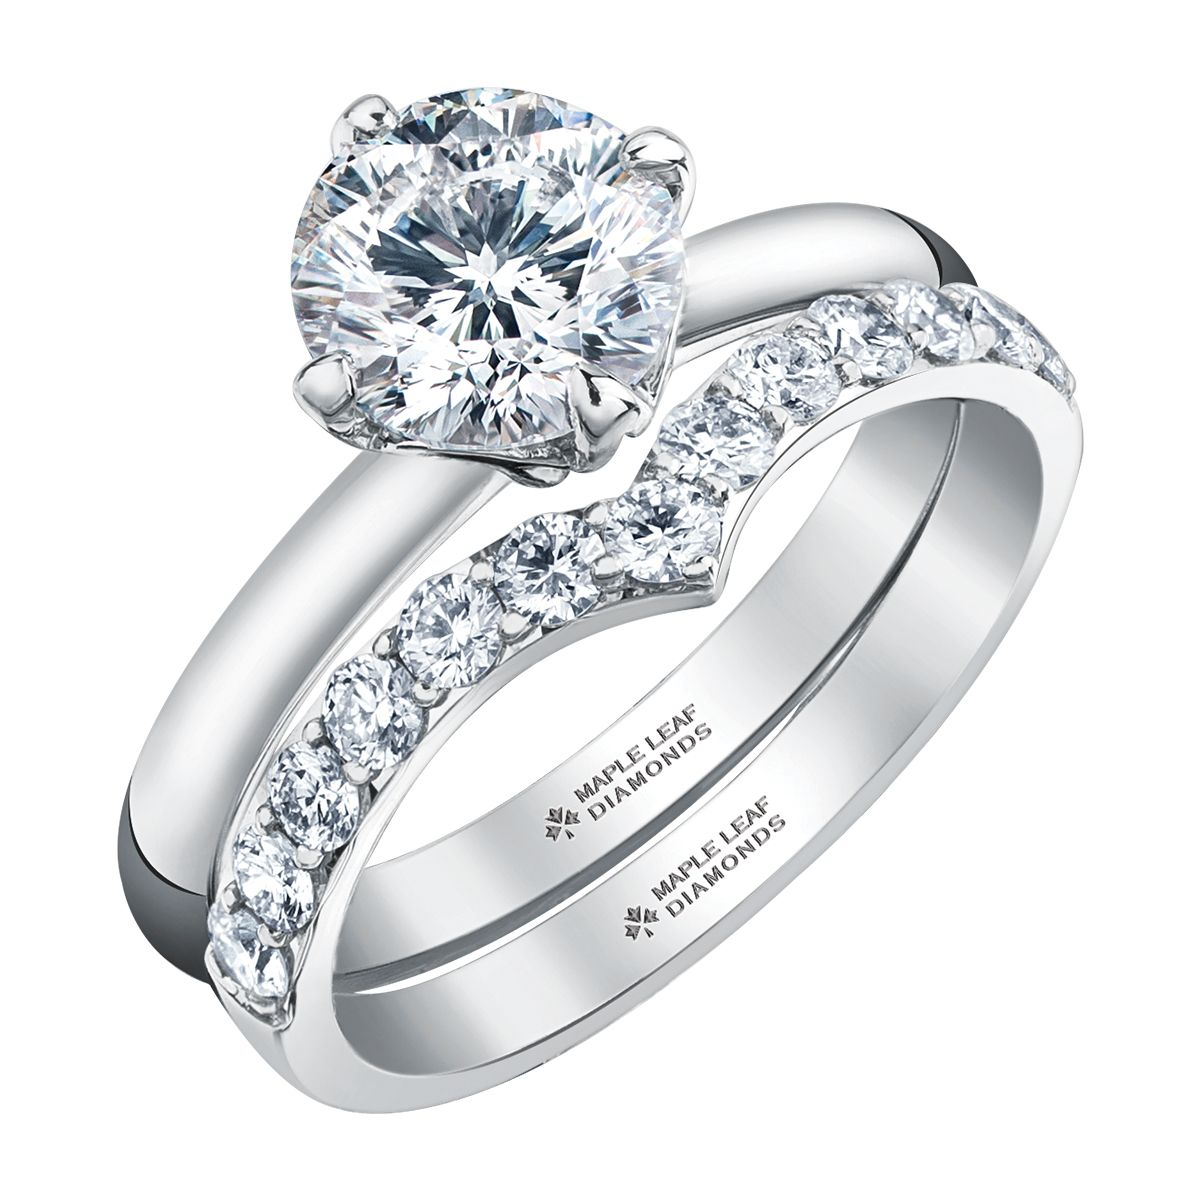 Canadian Solitaire Diamond with a Trending Angular Contour